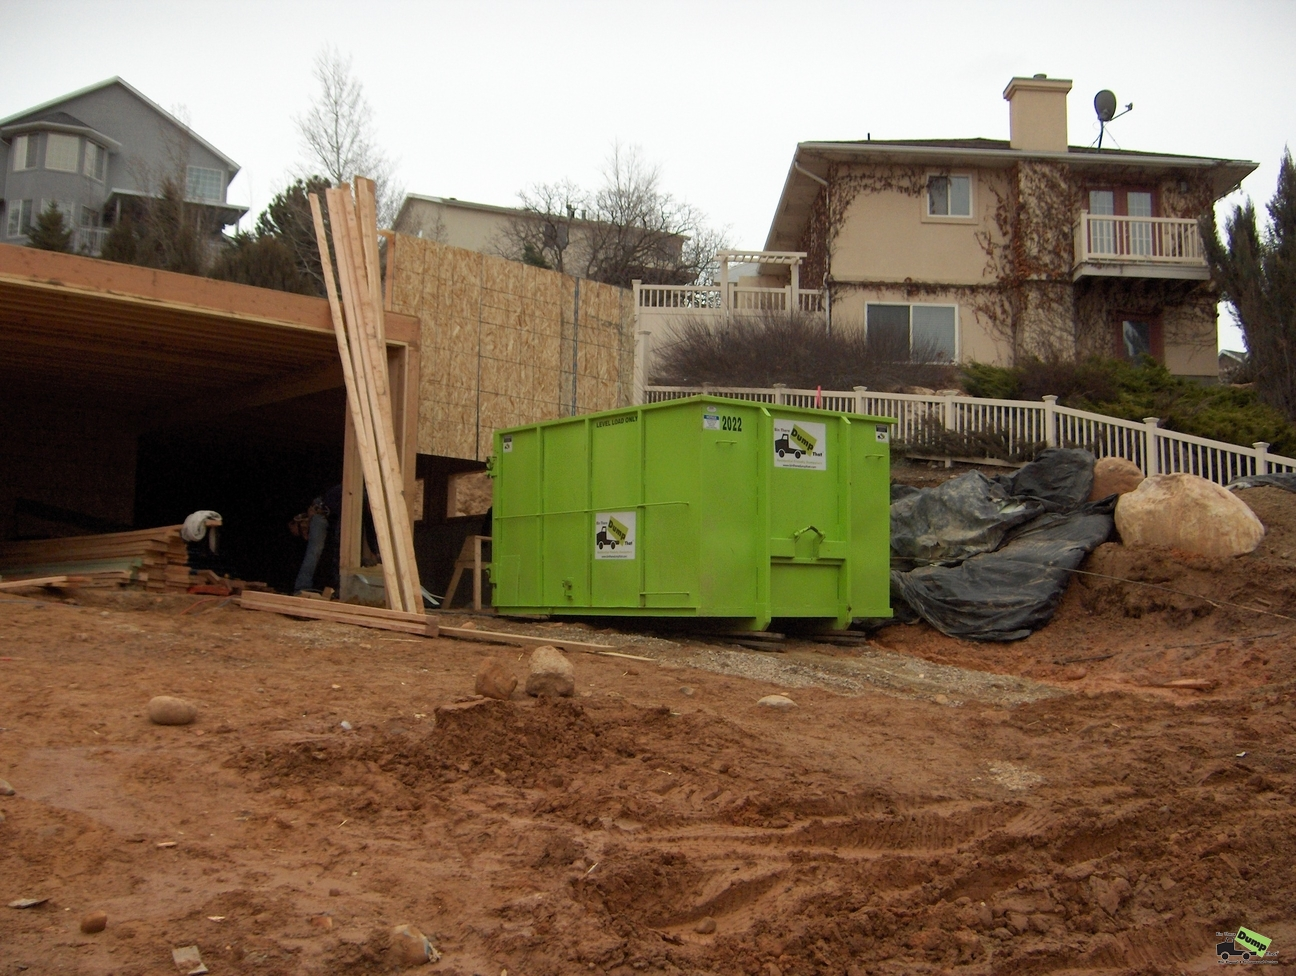 Salt Lake Residential Friendly Dumpster Rental